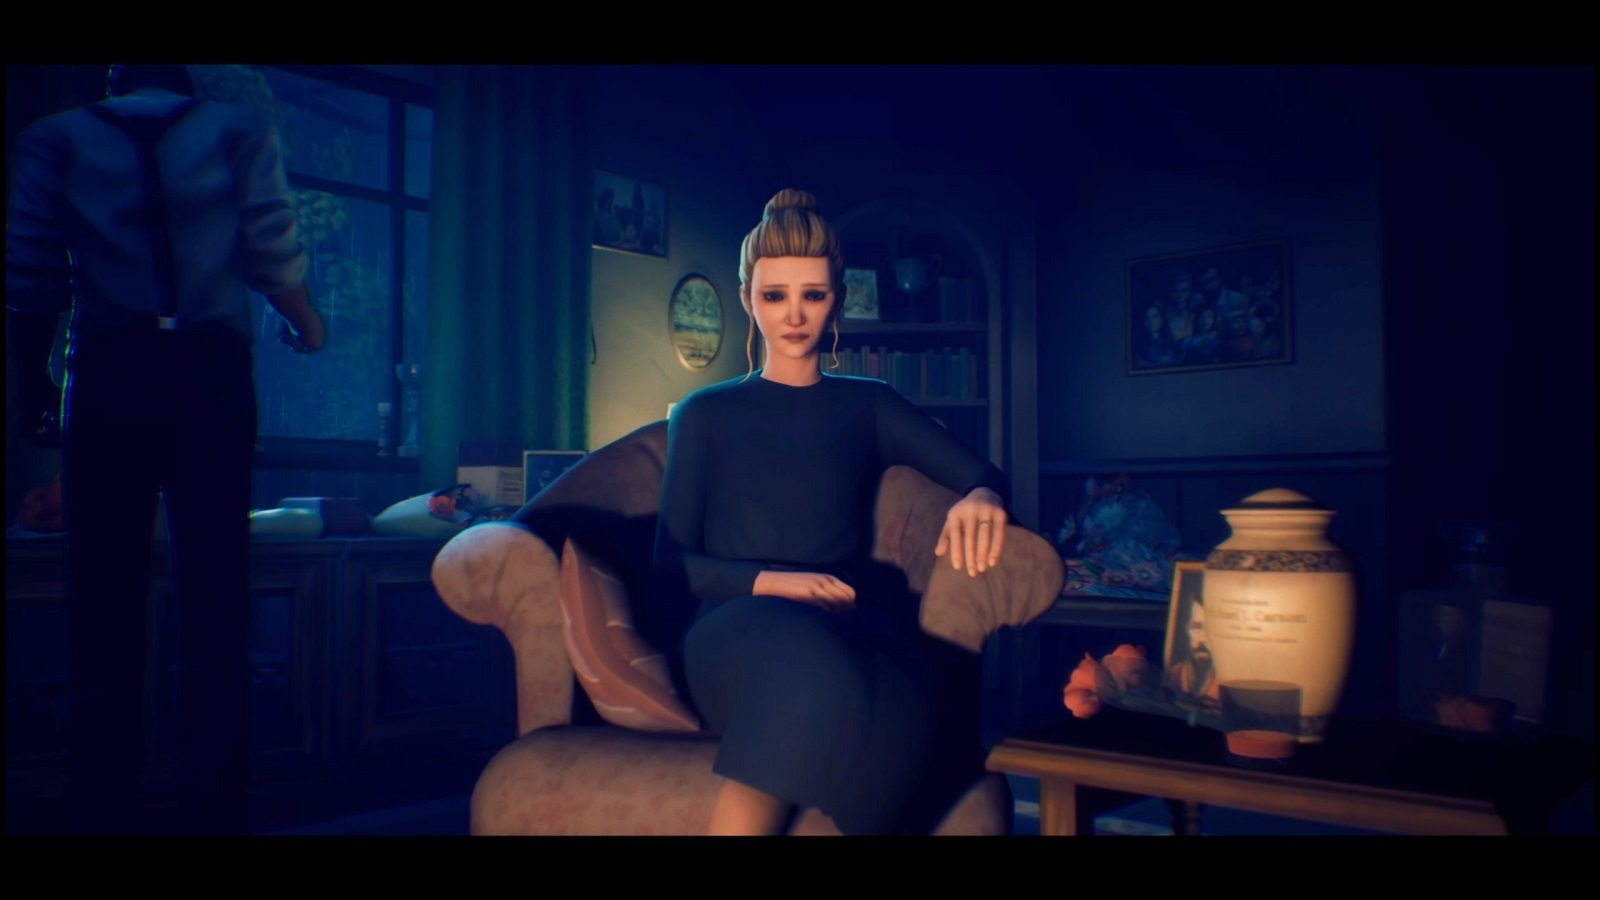 The Occupation; gameplay: Scarlet Carson